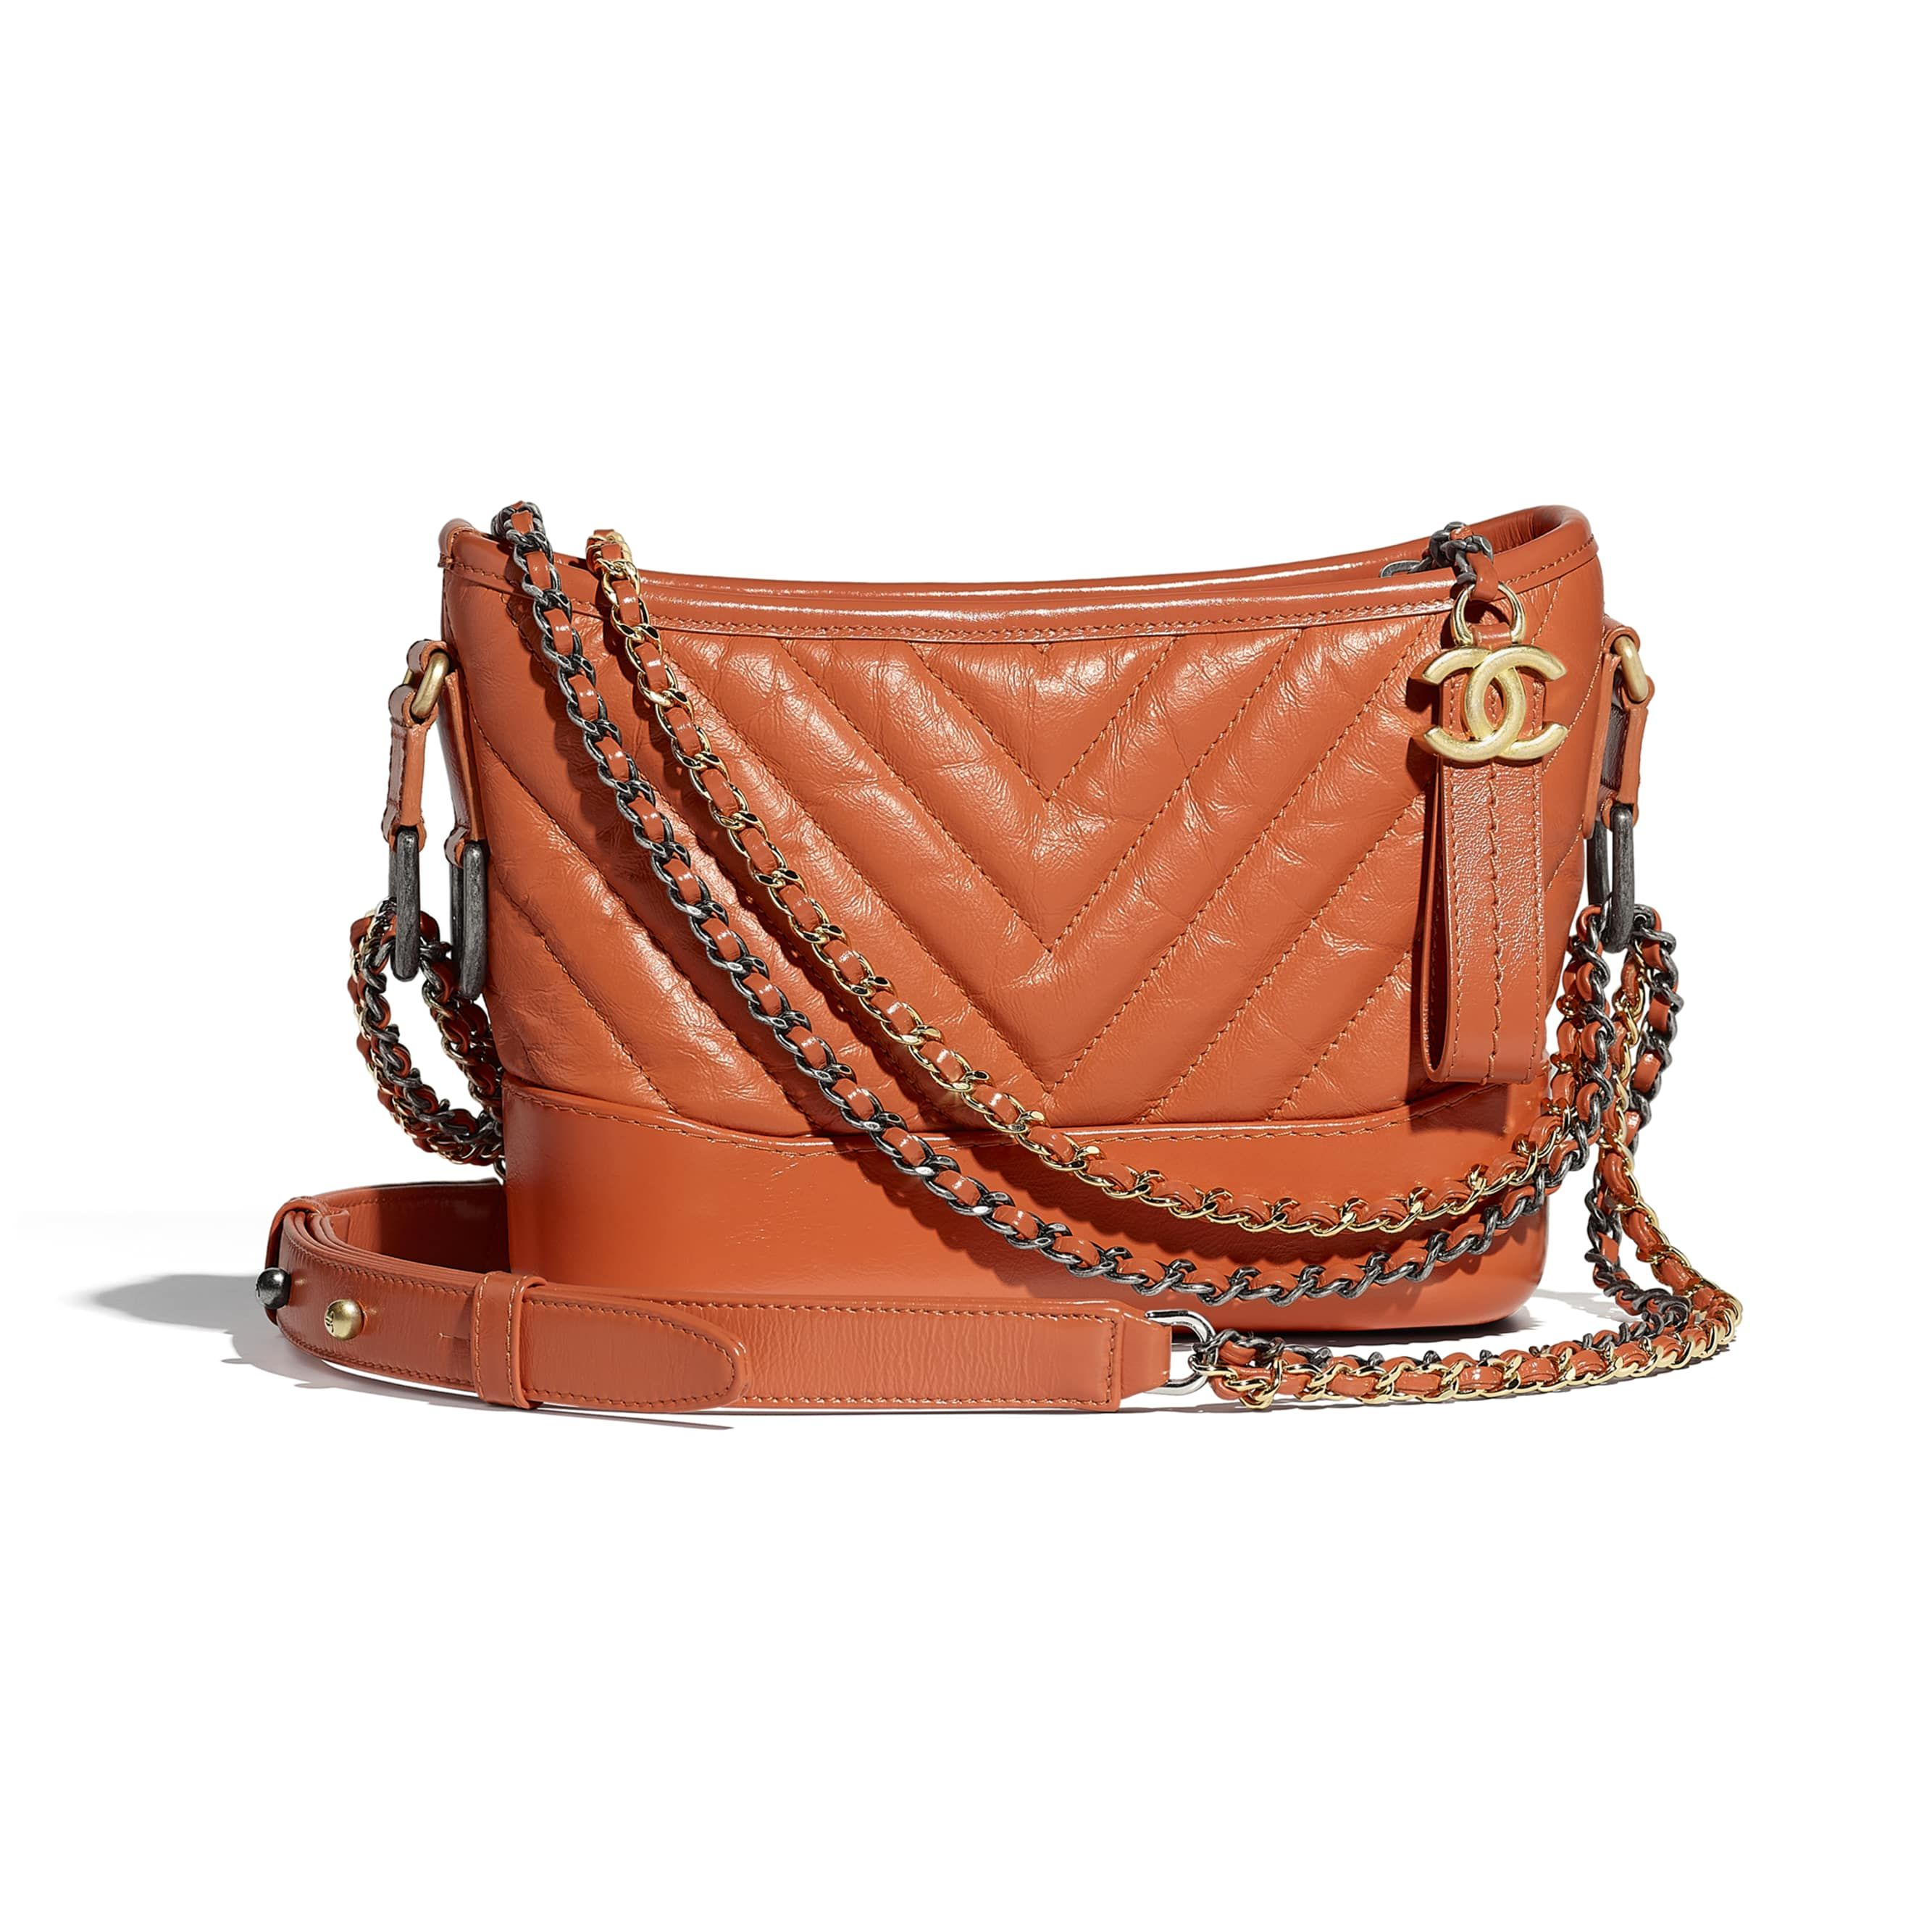 f0d65d9bec0 Chanel - PRE FW2018 19   Aged calfskin, smooth calfskin, silver-tone    gold-tone metal orange Chanel s Gabrielle small Hobo bag ( 3,900)